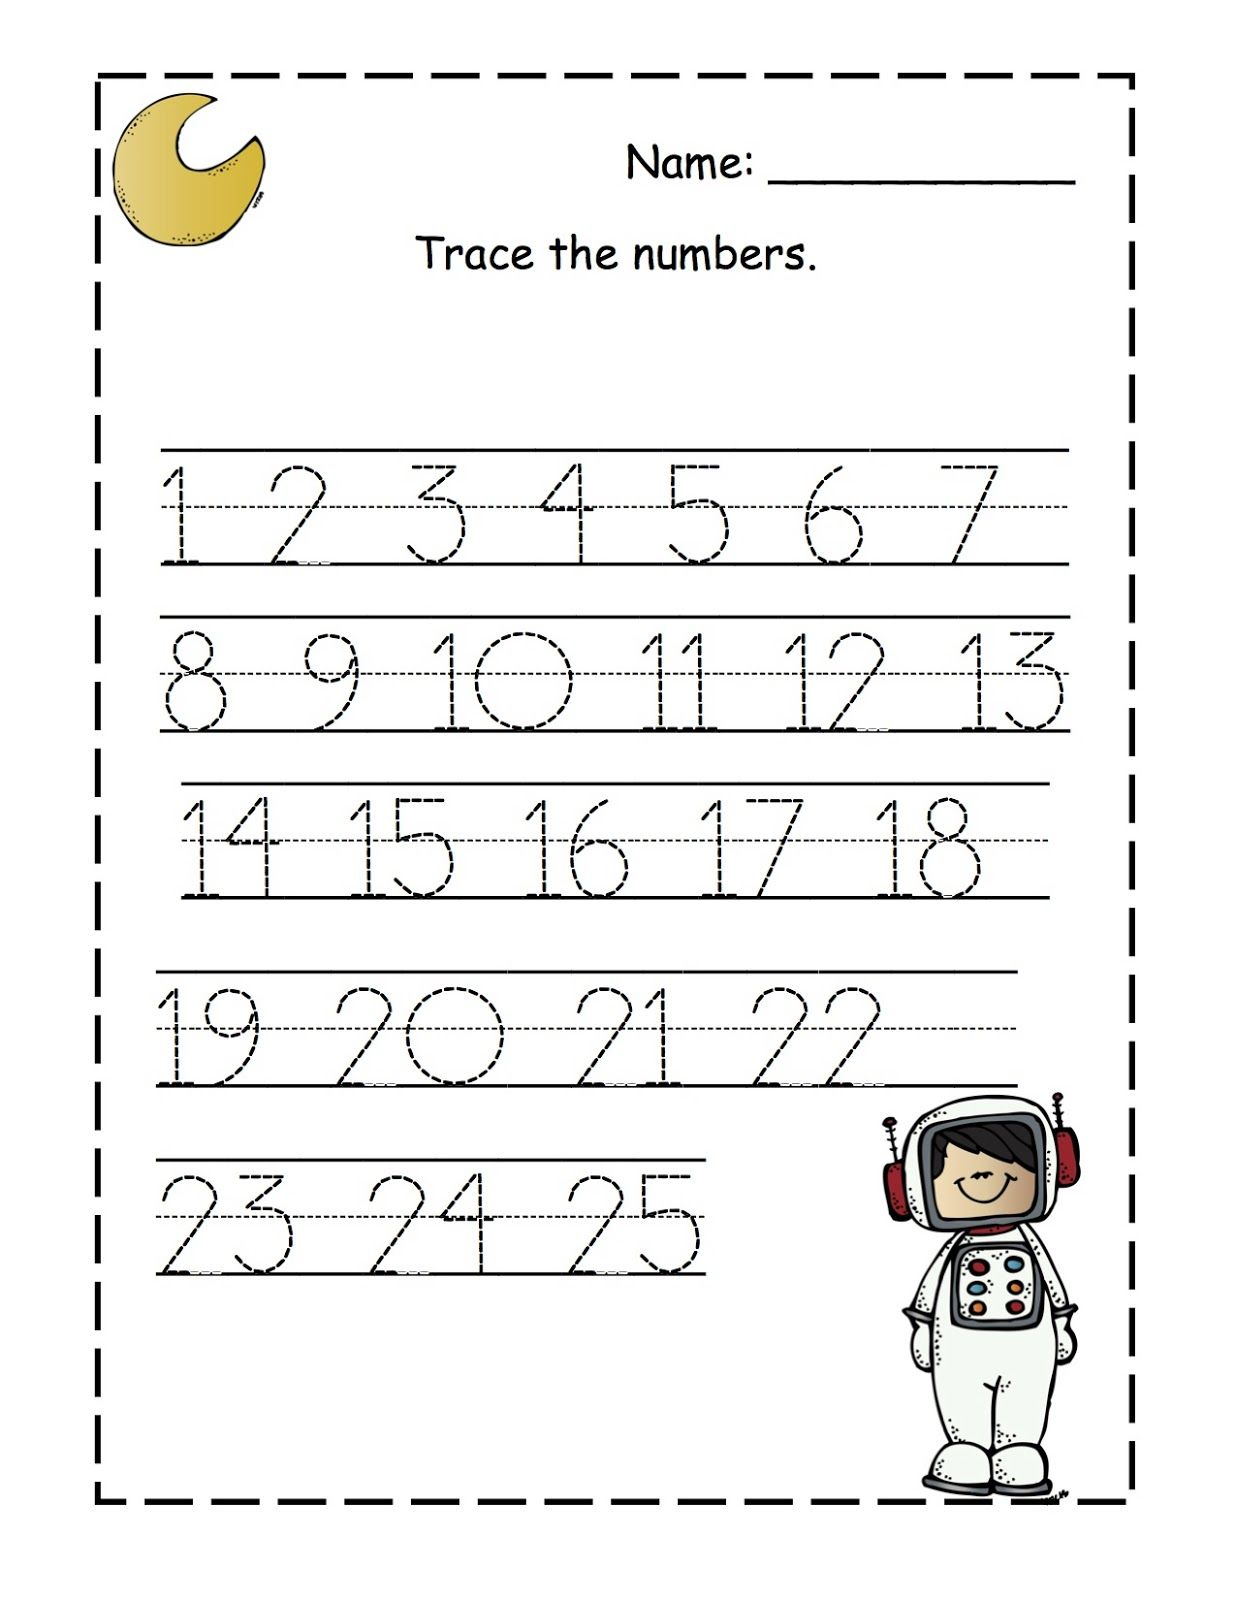 Numbers tracing printables for preschoolers - The Best Selections Of Number Tracing Worksheets That You Can Print And Give To Your Children To Help Them Learn About Numbers